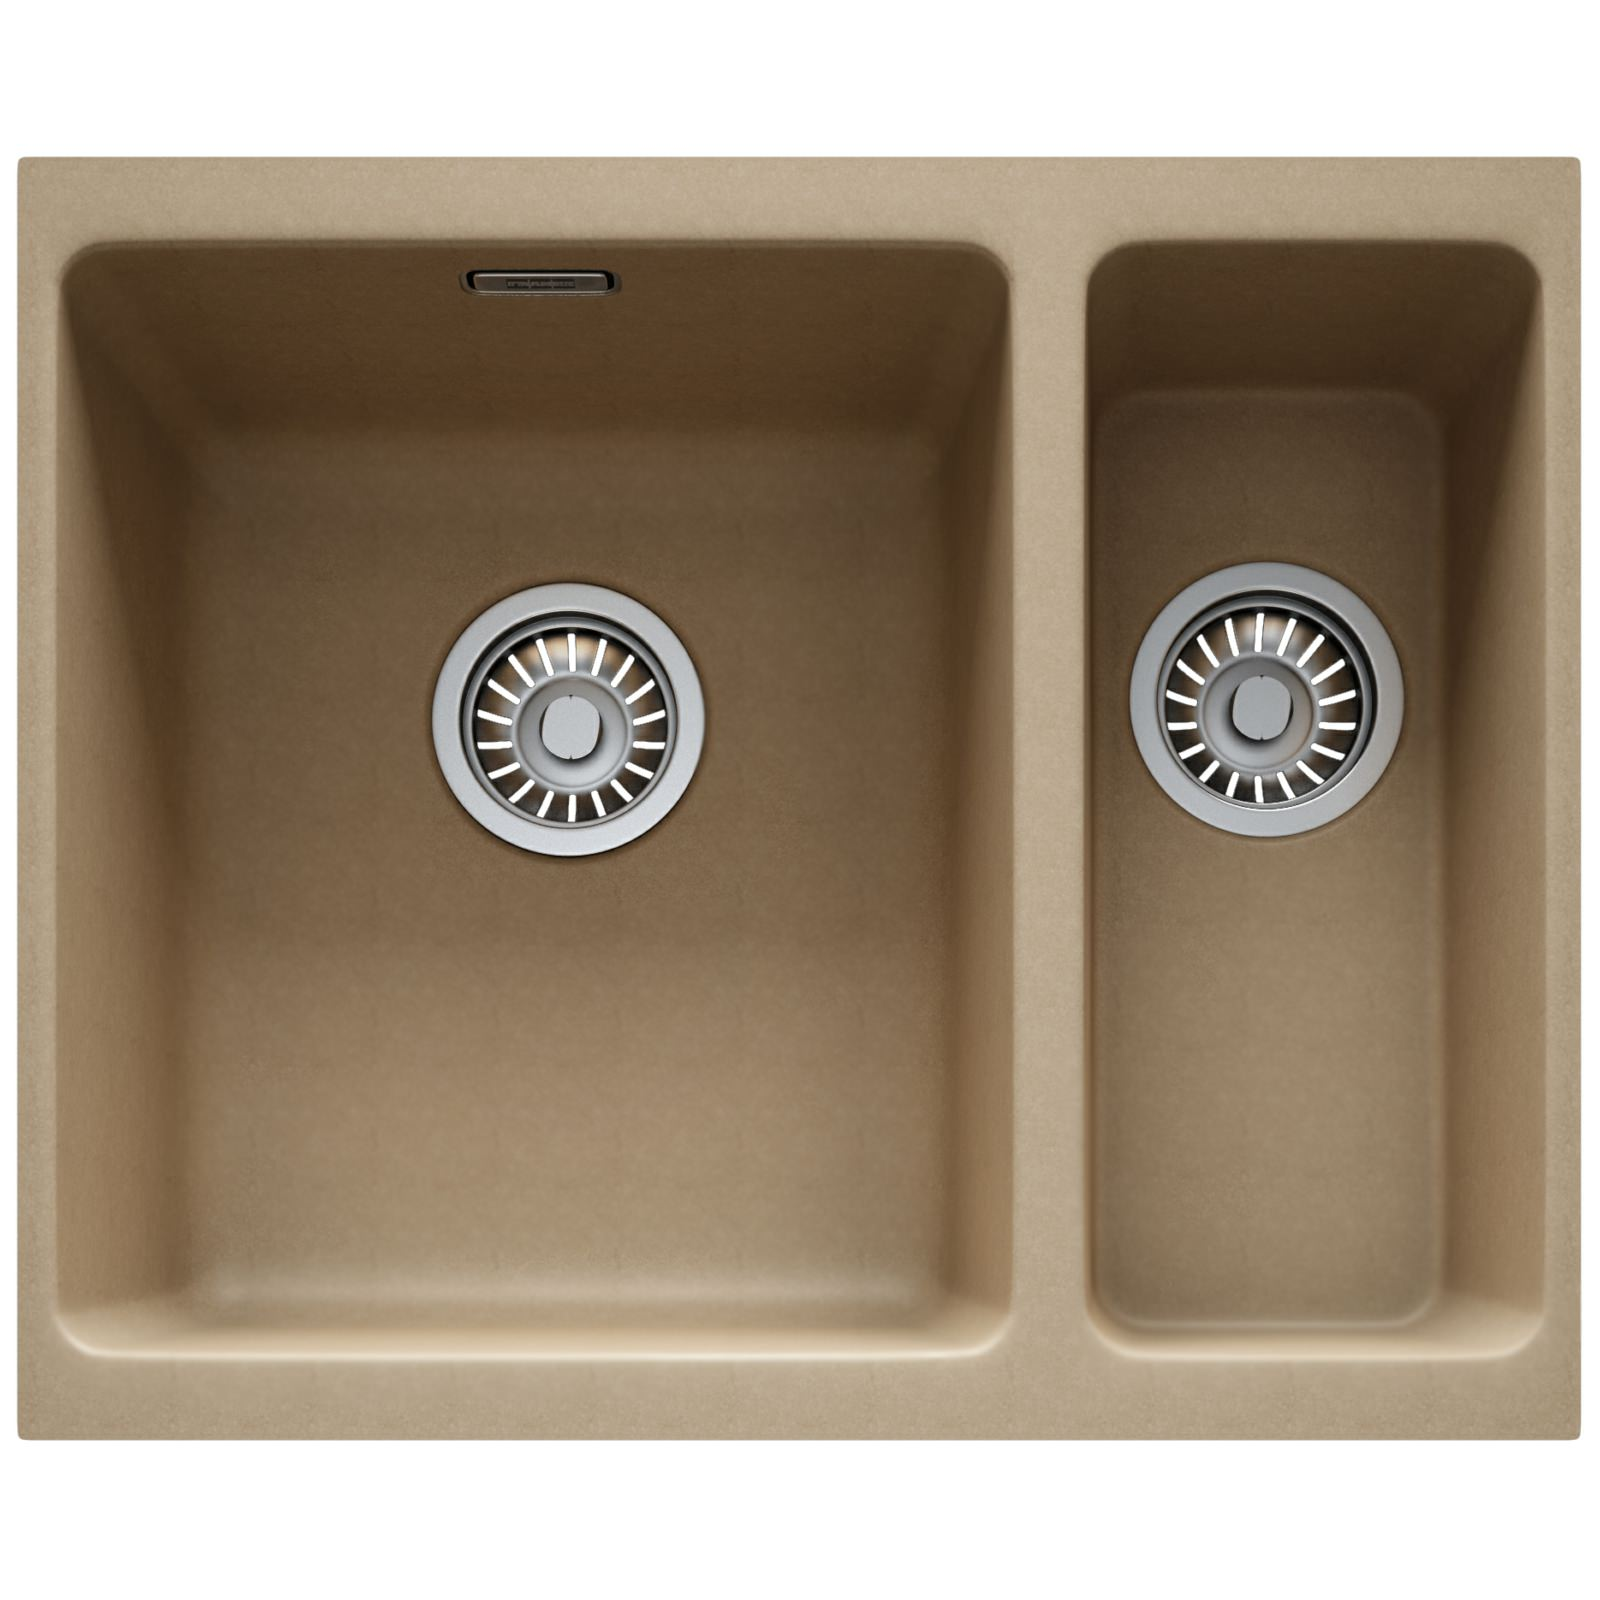 Franke Fragranite Undermount Sink : Franke Kubus KBG 160 Fragranite Oyster 1.5 Bowl Undermount Sink 125 ...